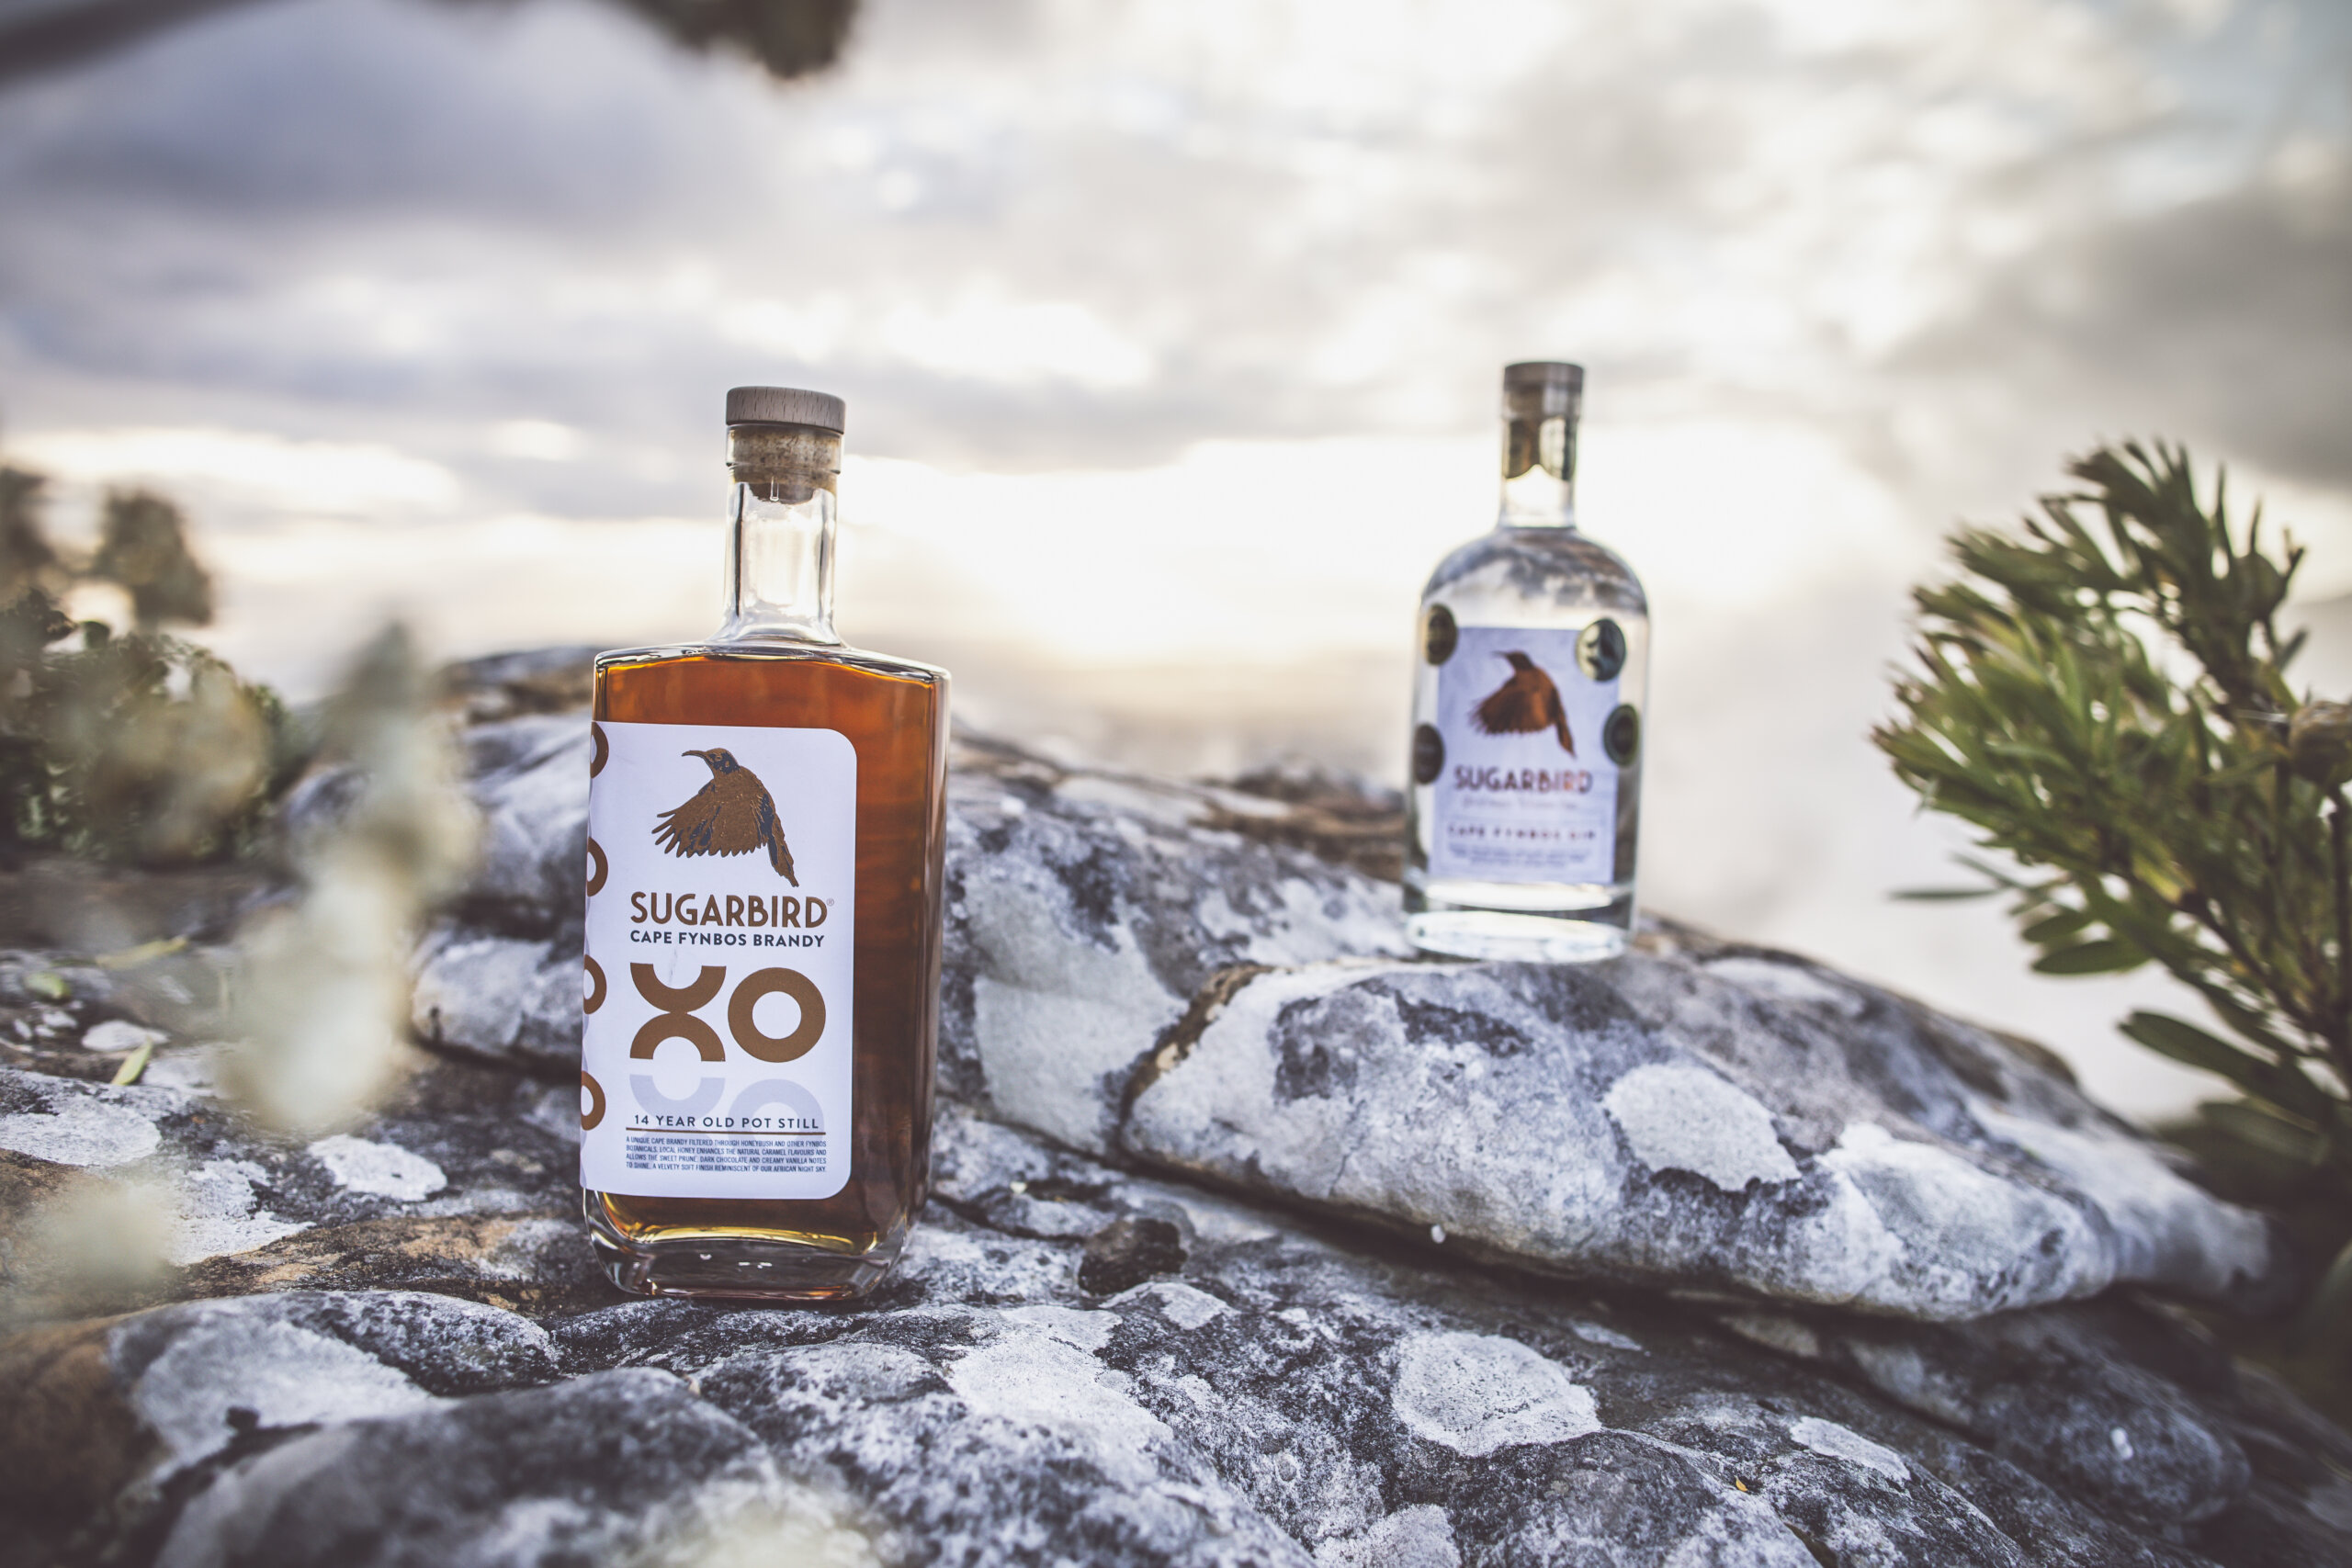 CAPE TOWN'S SUGARBIRD CRAFT GIN, SPREADS ITS WINGS TO BRANDY